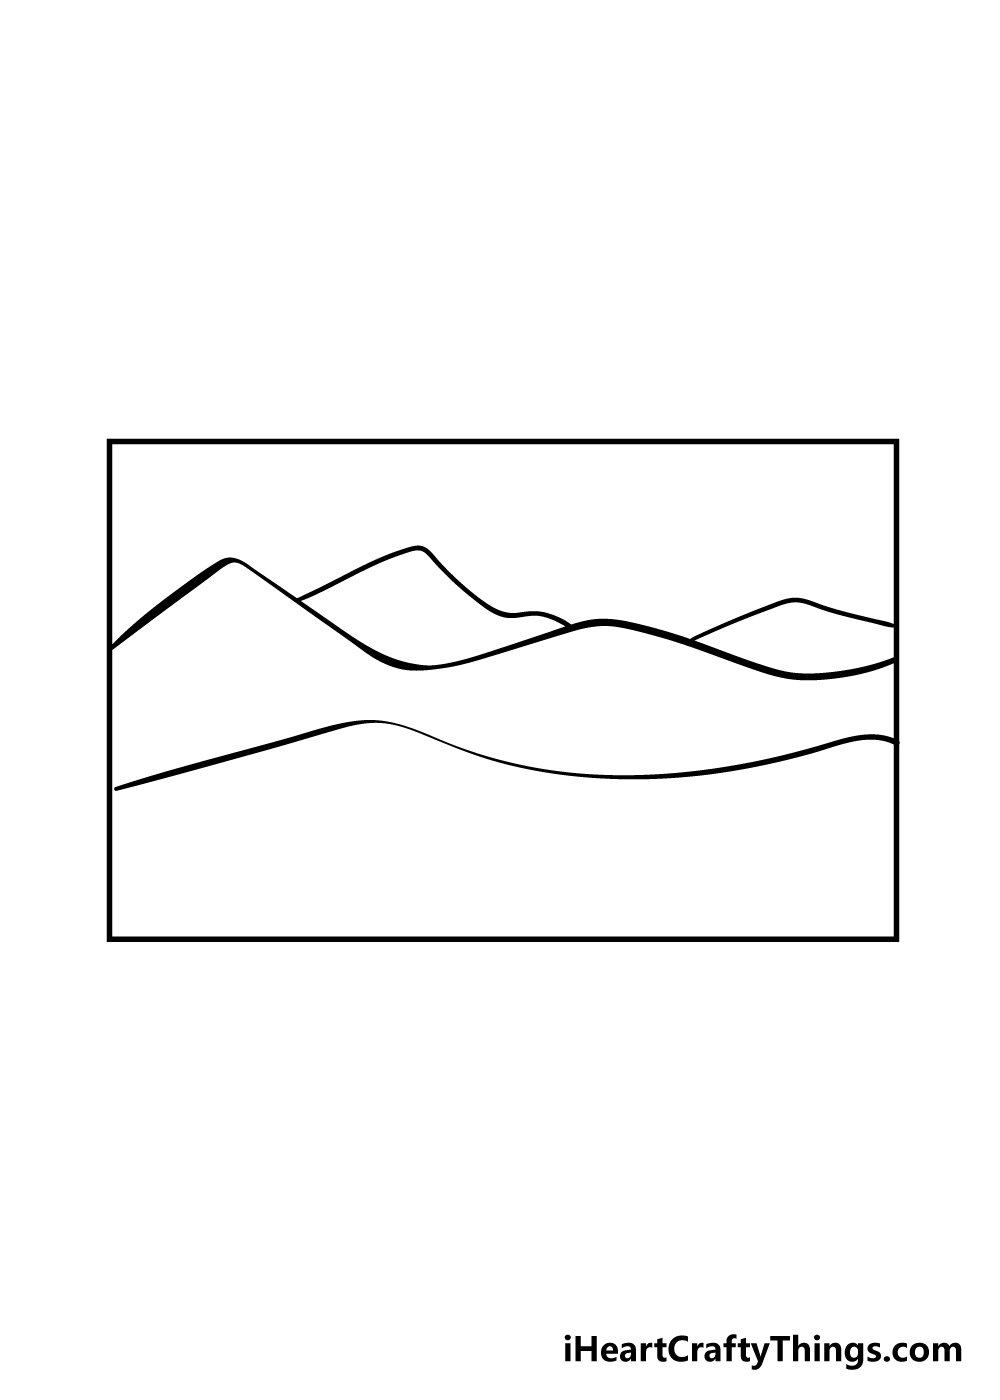 mountain drawing step 3